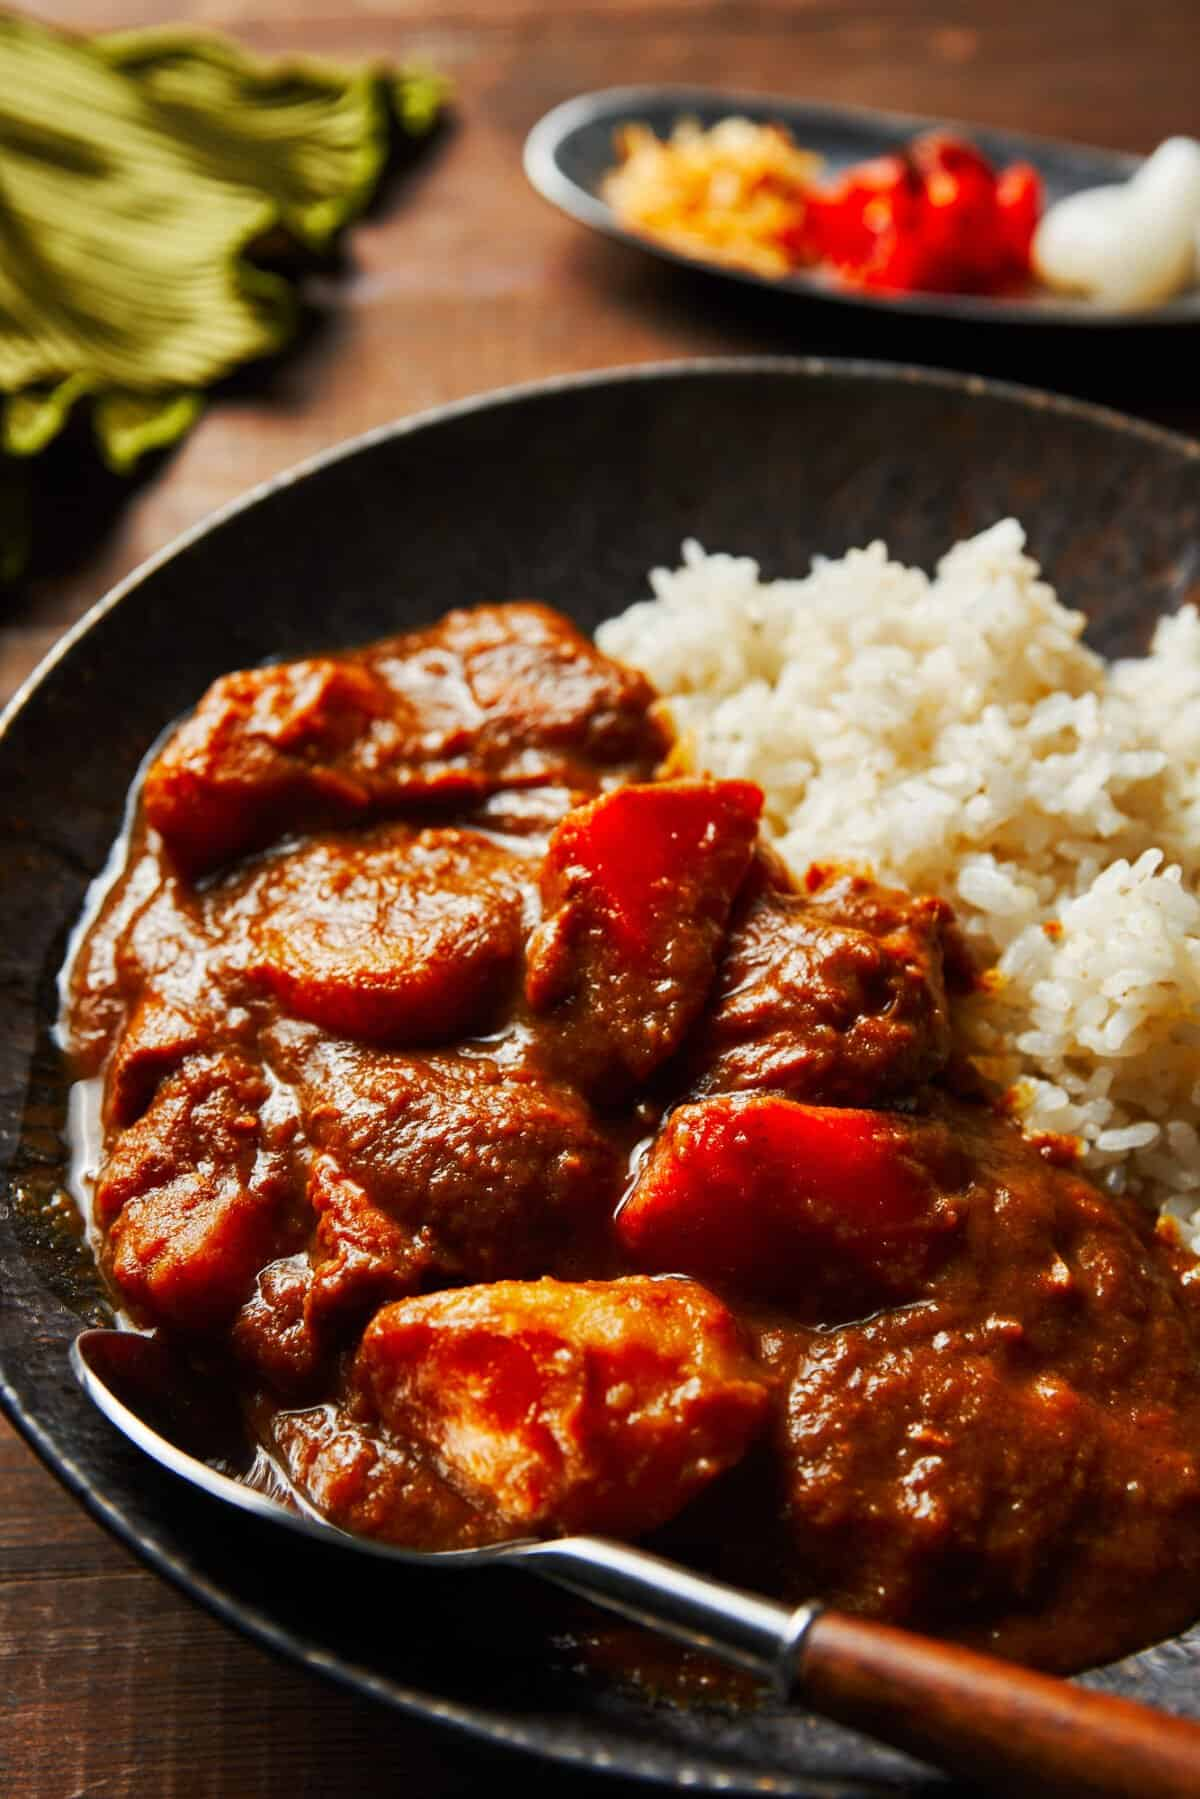 This Japanese Curry made from scratch gets its flavor and thickness through the power of fruits and vegetables. It's the perfect hearty winter meal for groups of kids and grownups alike.